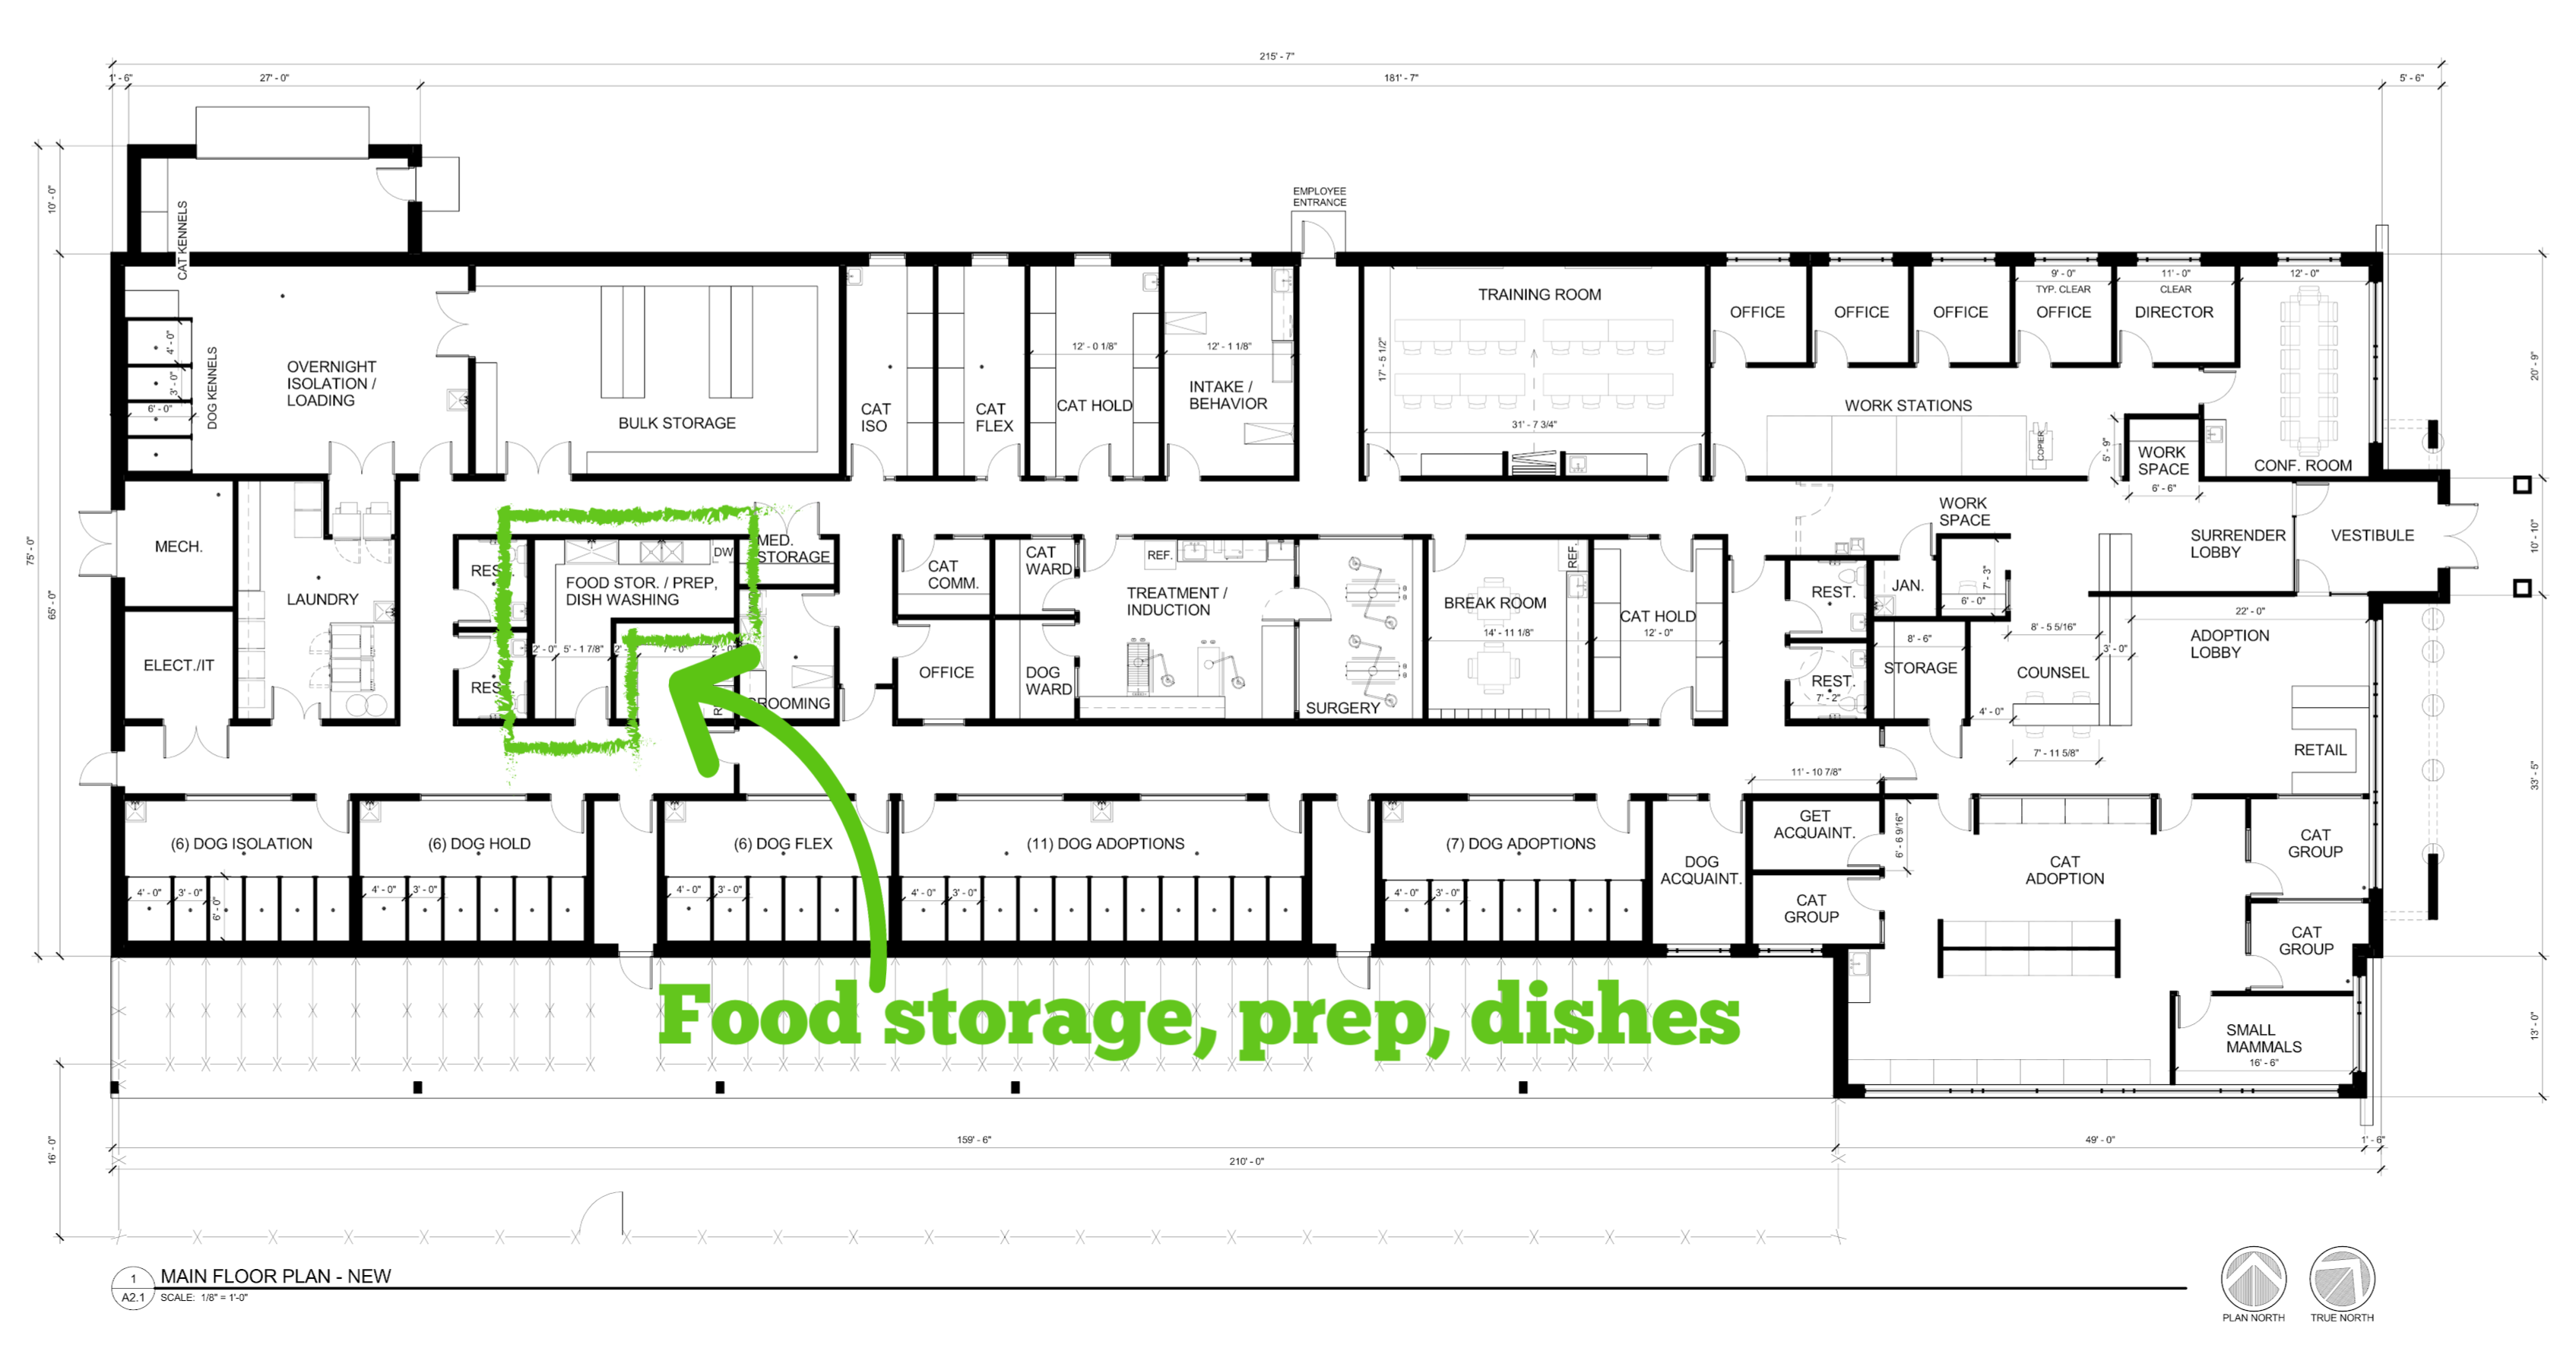 Food storage, prep, dishes